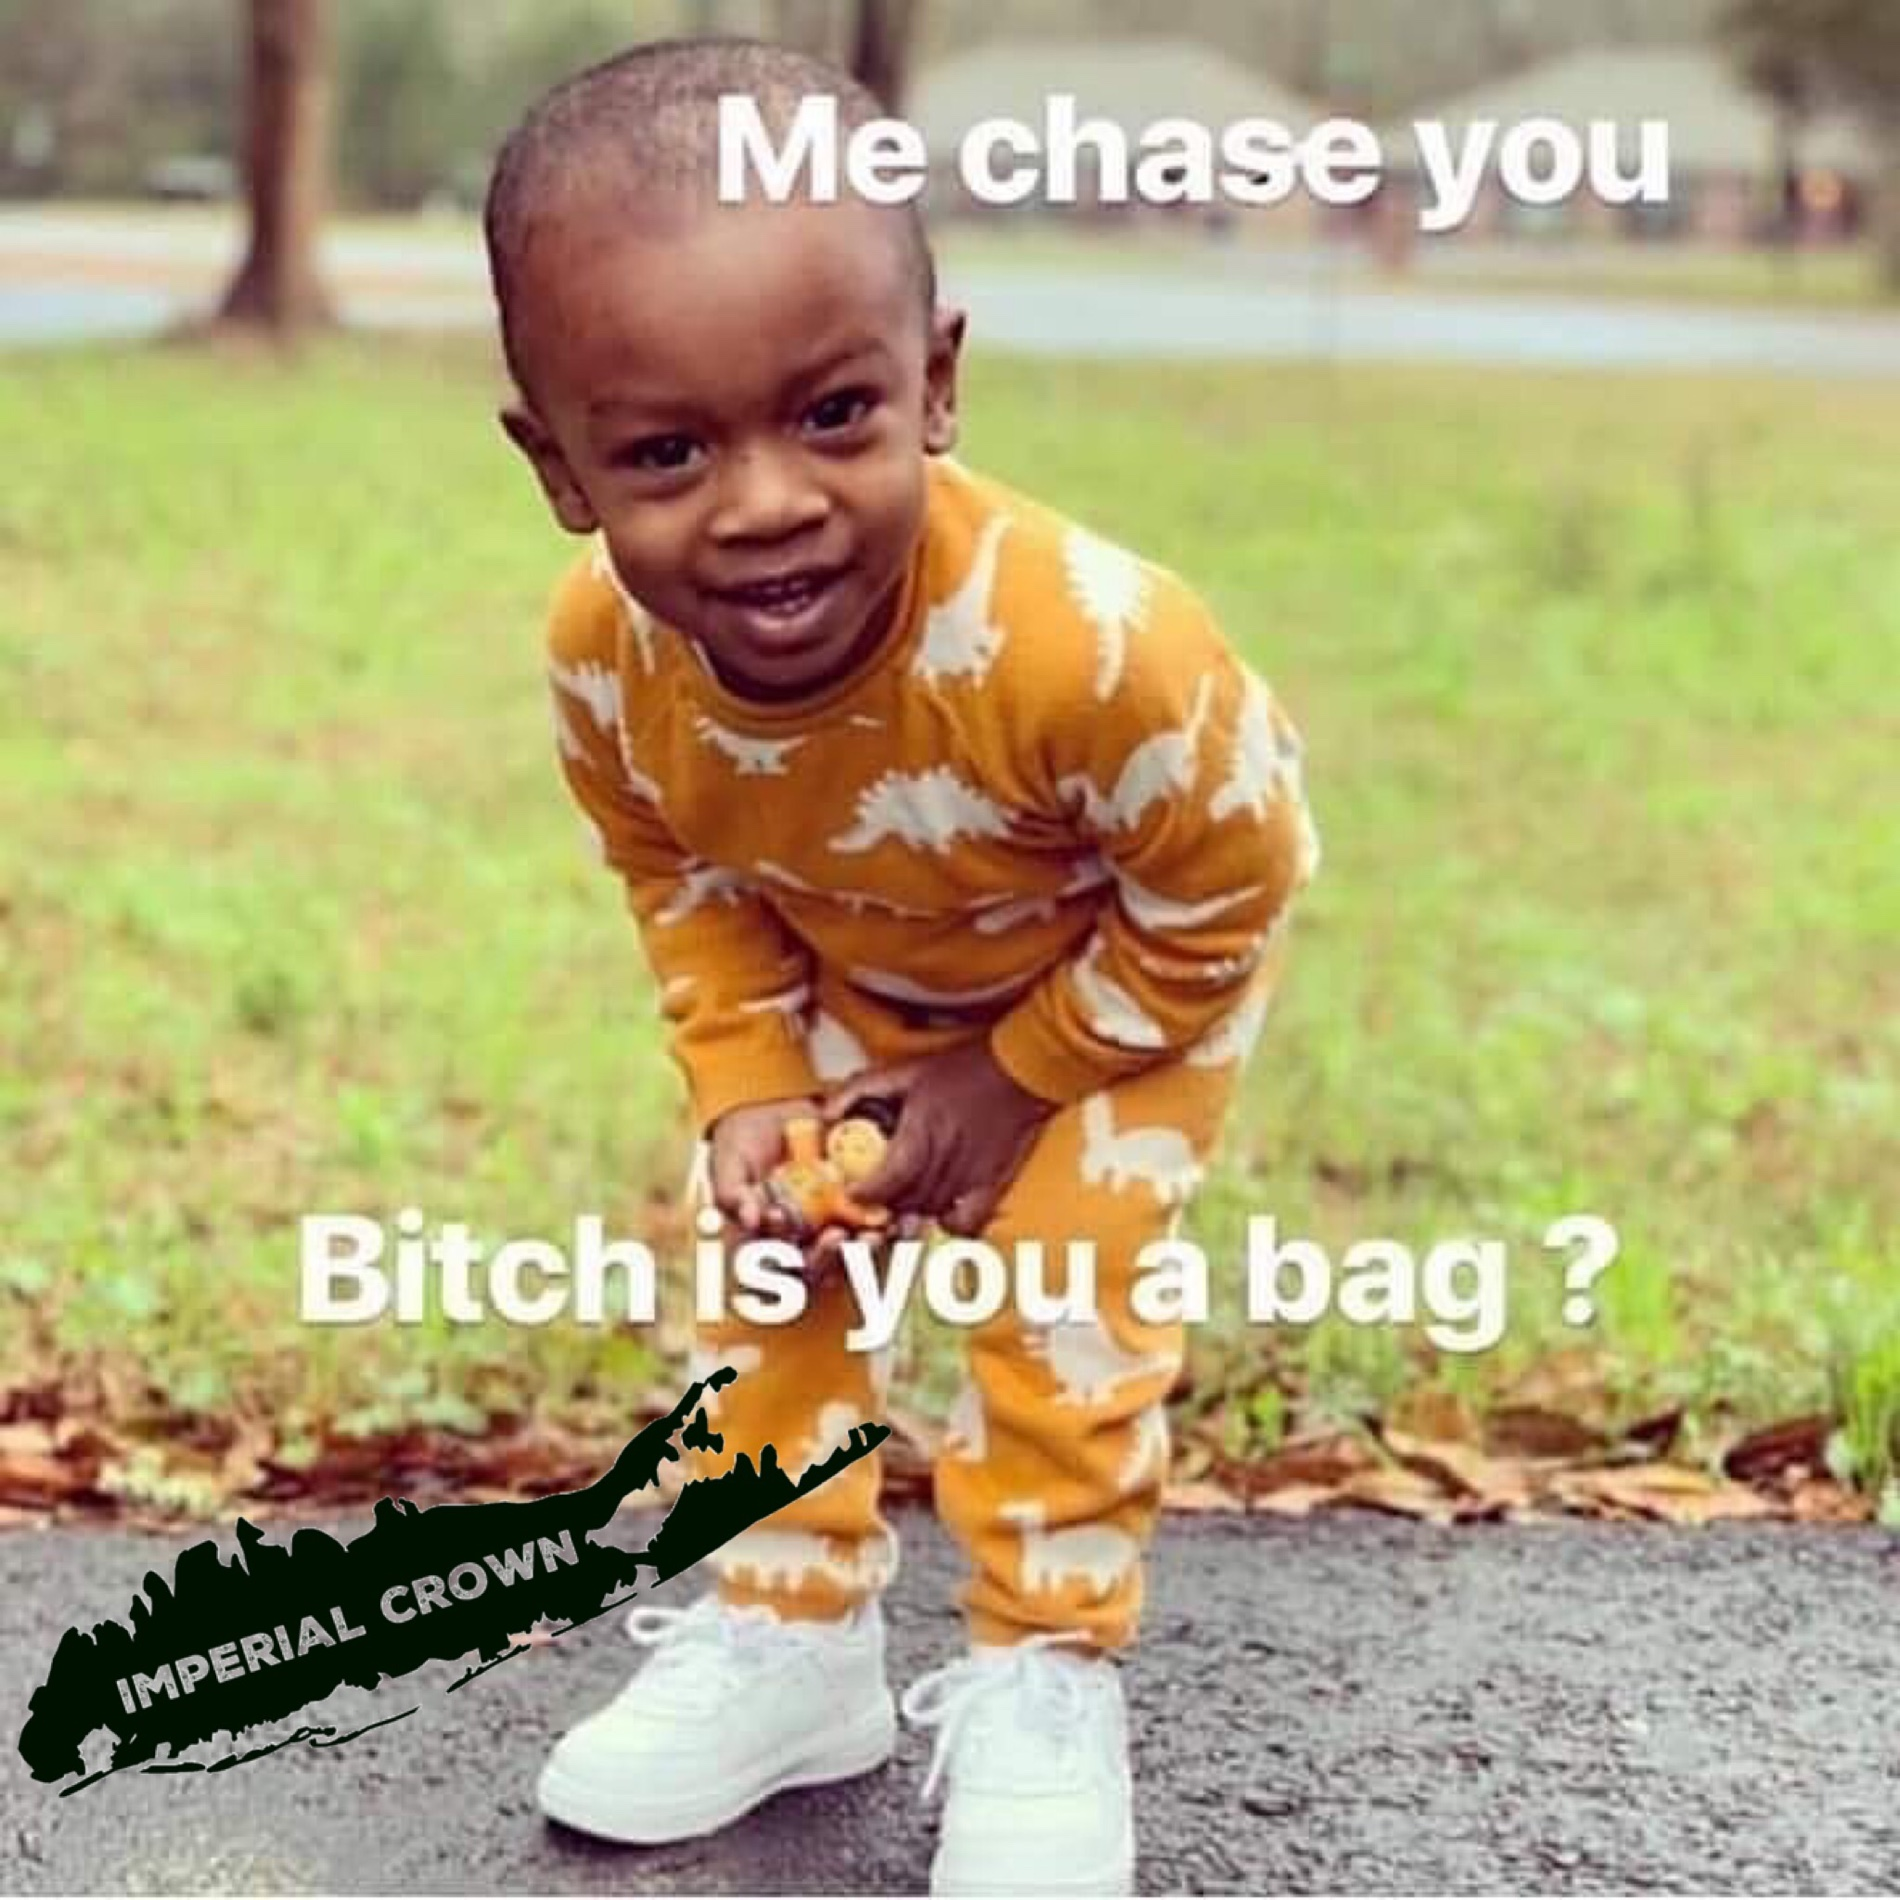 bitch is you a bag?